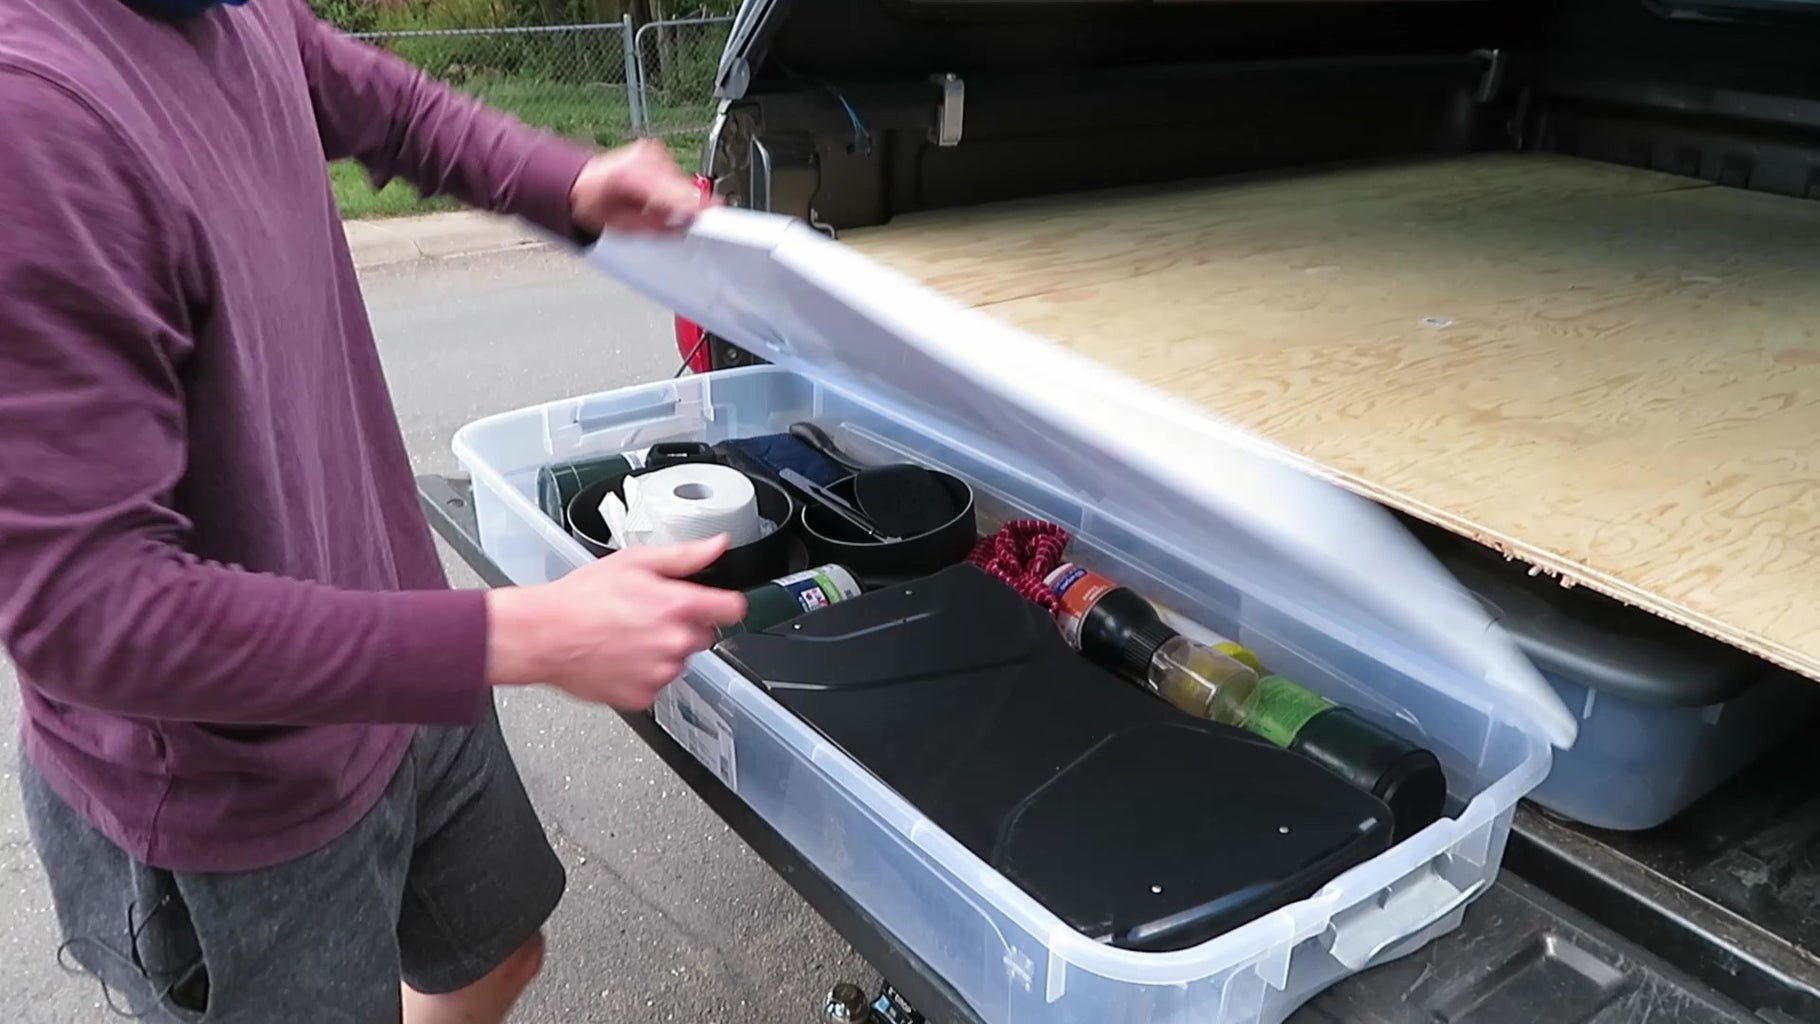 Step 3: Add Storage Bins and Fill With Gear